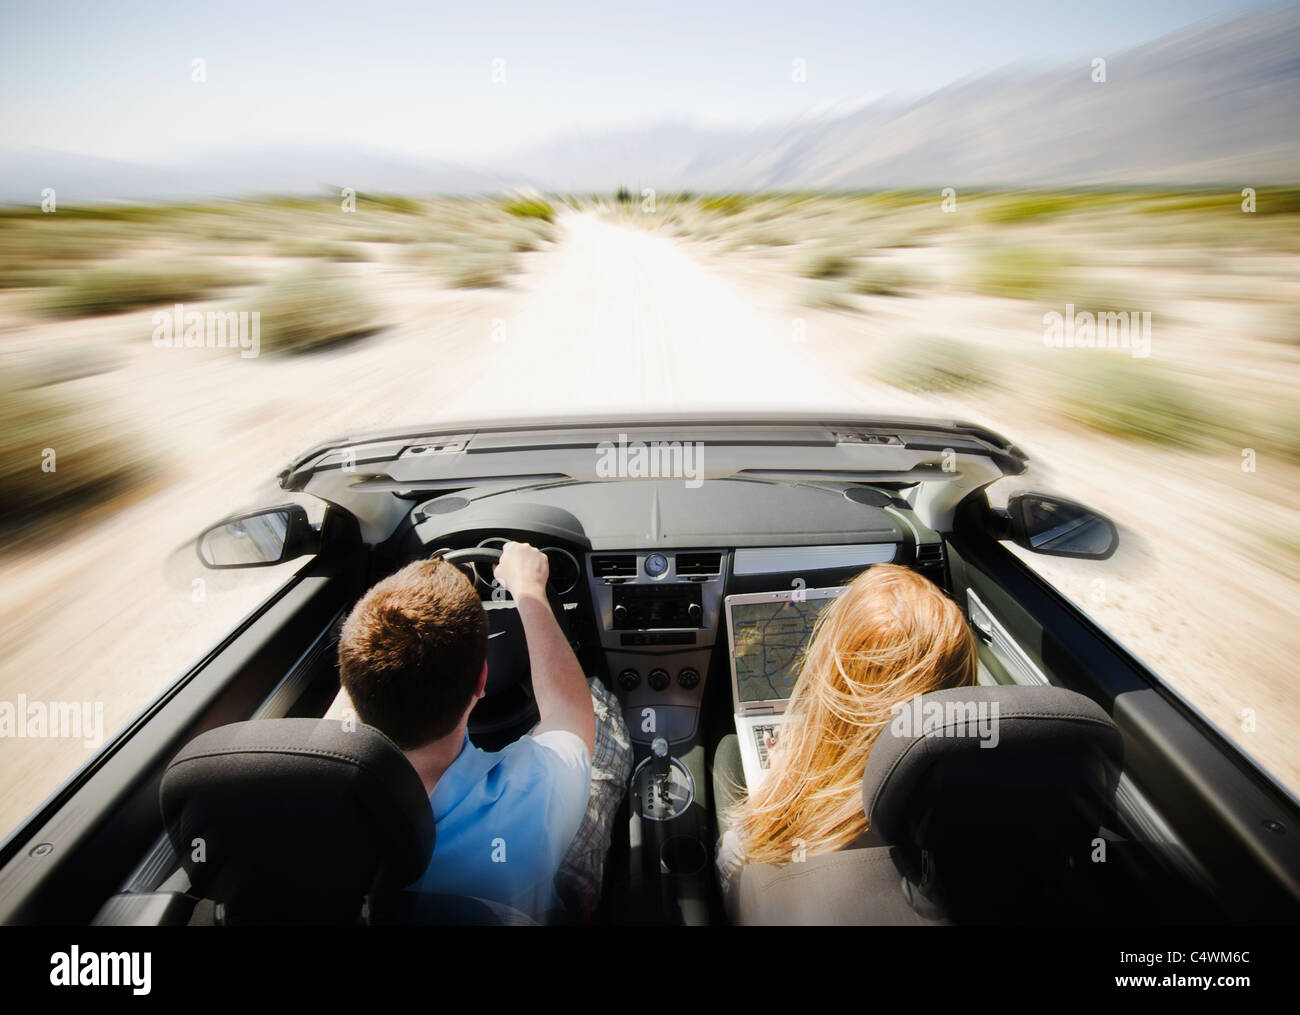 USA, California, Palm Springs, Coachella Valley, San Gorgonio Pass, Couple driving through desert en voiture décapotable Photo Stock